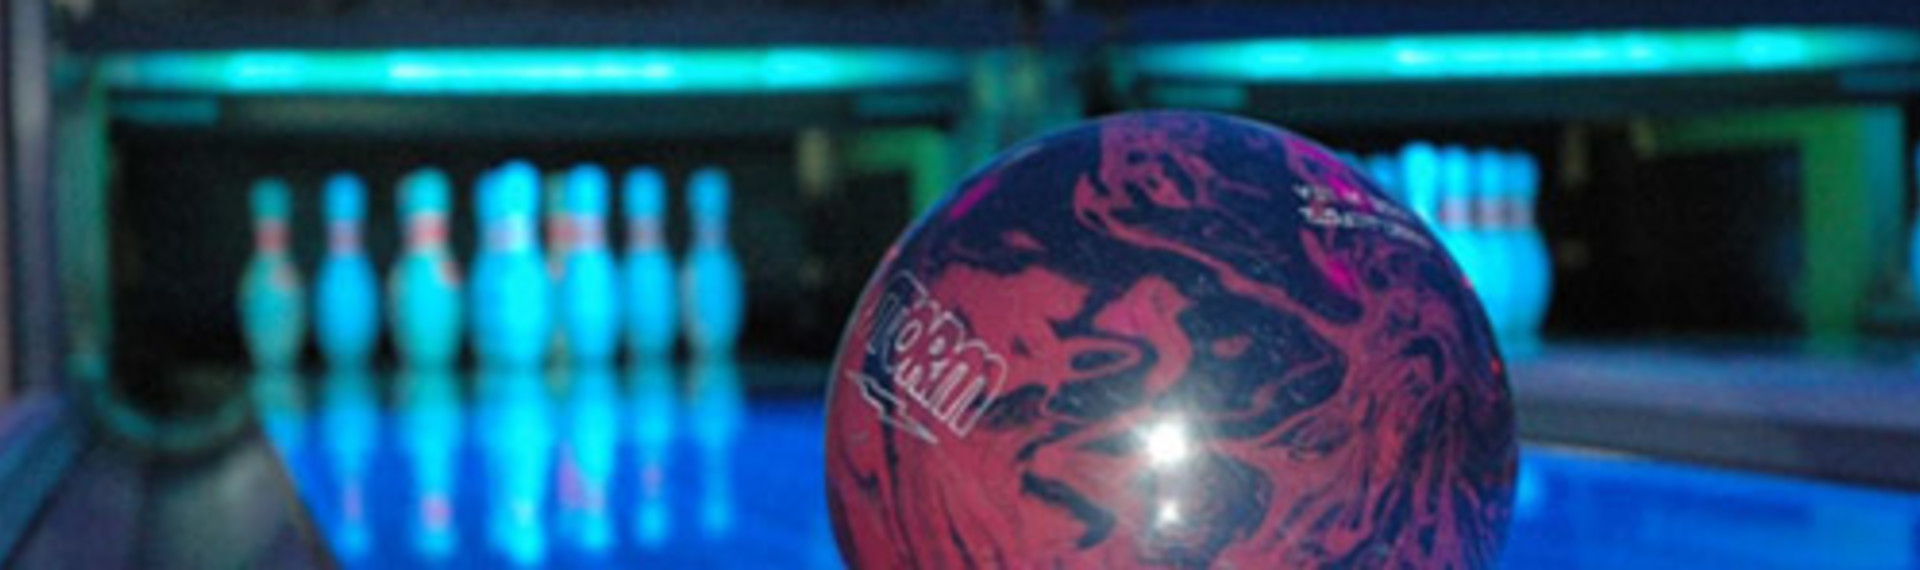 Budapest Beer und Bowling image